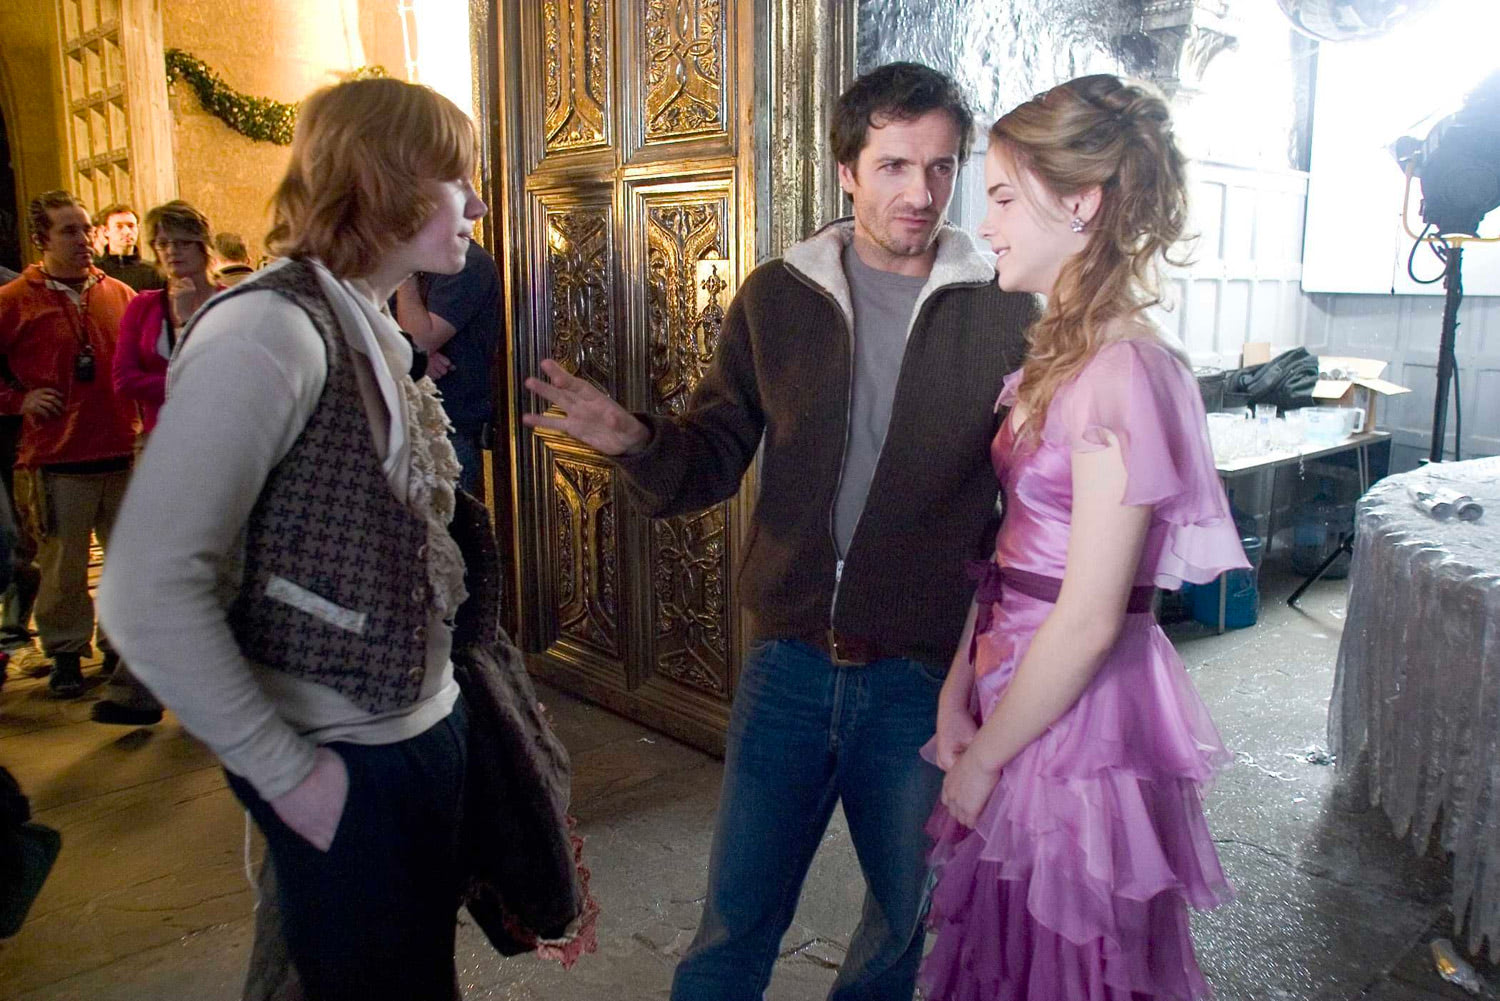 Rupert Grint, David Heyman and Emma Watson